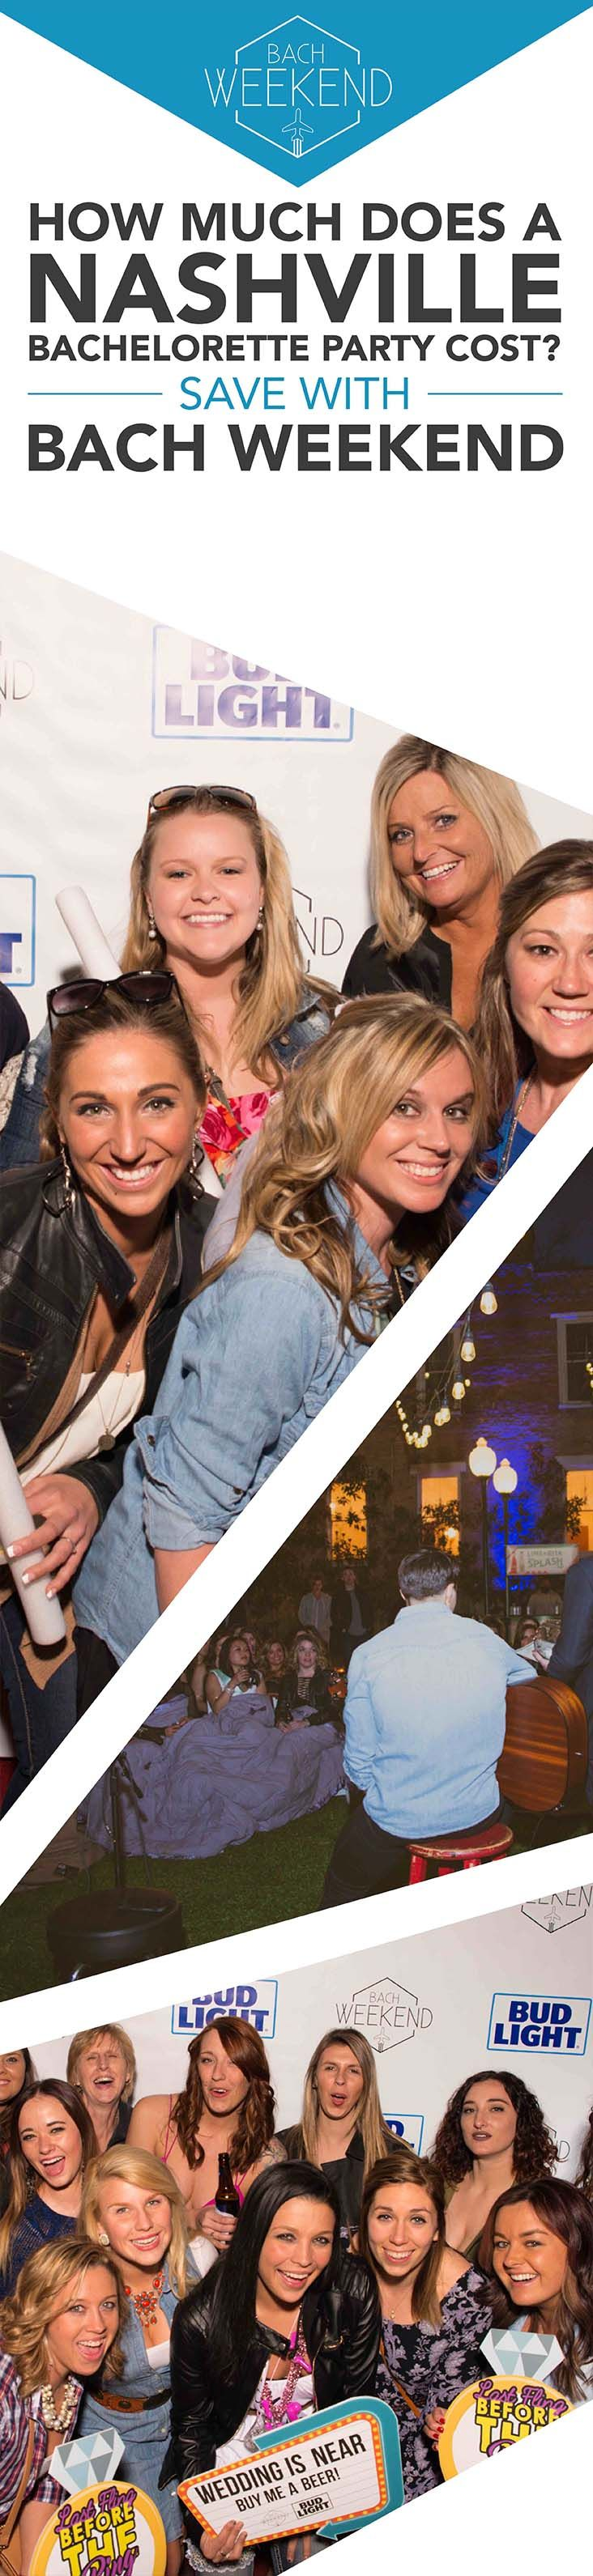 Since Nashville is now a destination city for bachelorette parties, many bridesmaids are planning their fun-filled weekends around Music City attractions. The average spend per person on a bachelorette party can rise to $1000! Don't be discouraged, Bach Weekend is here to the rescue!